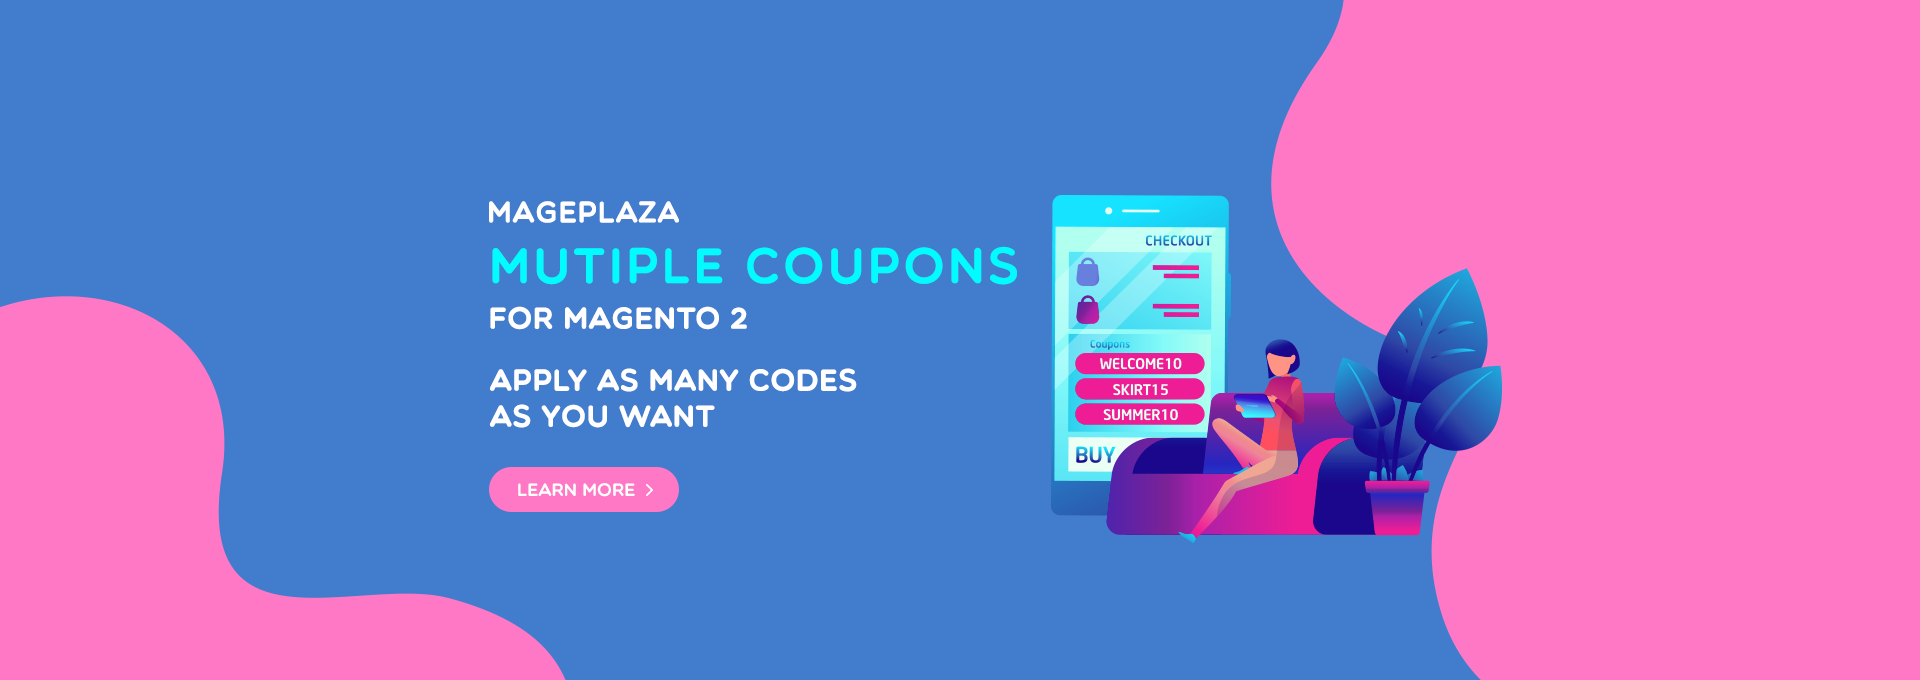 Magento 2 Multiple Coupons - Motivate customers to buy & Eliminate losing money